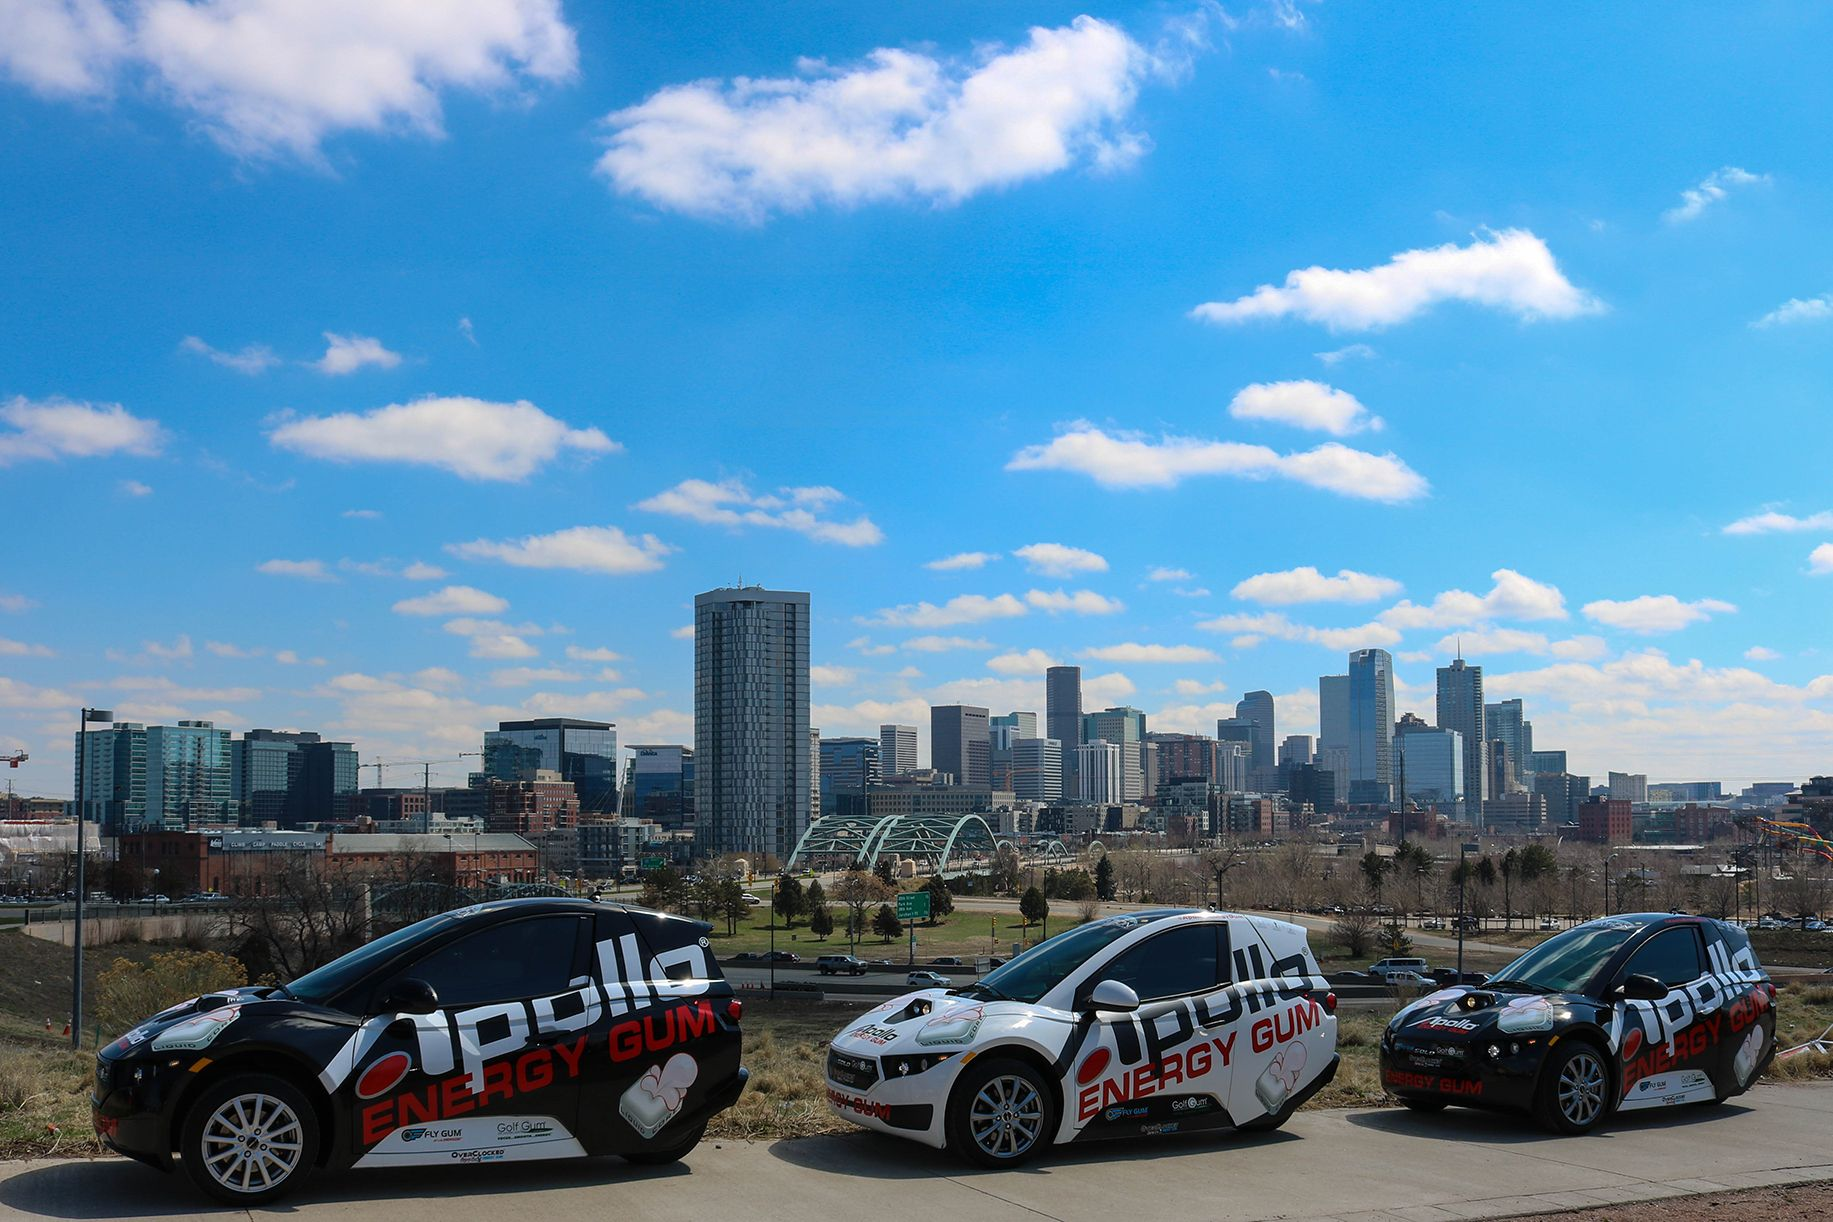 Denver Skyline with Apollo SOLO Fleet Vehicles